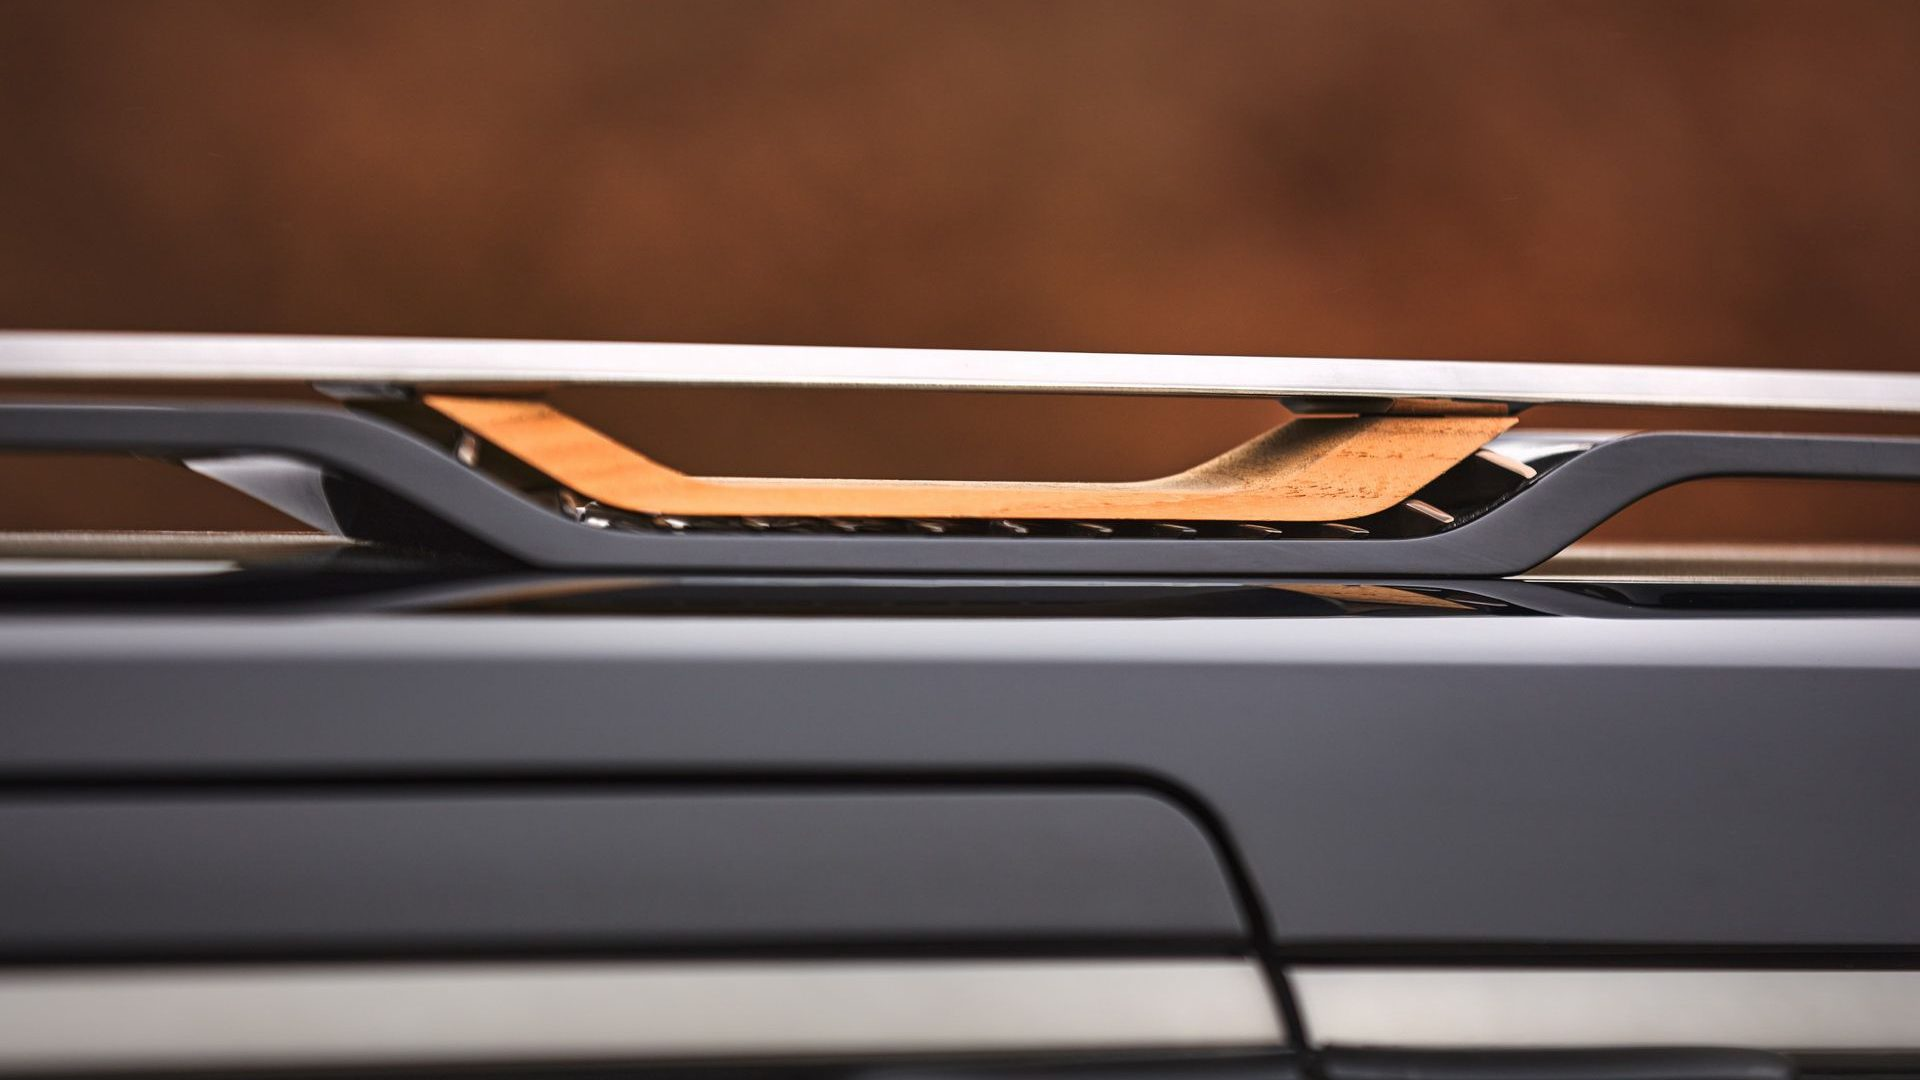 2020-Jeep-Grand-Wagoneer-Concept-28